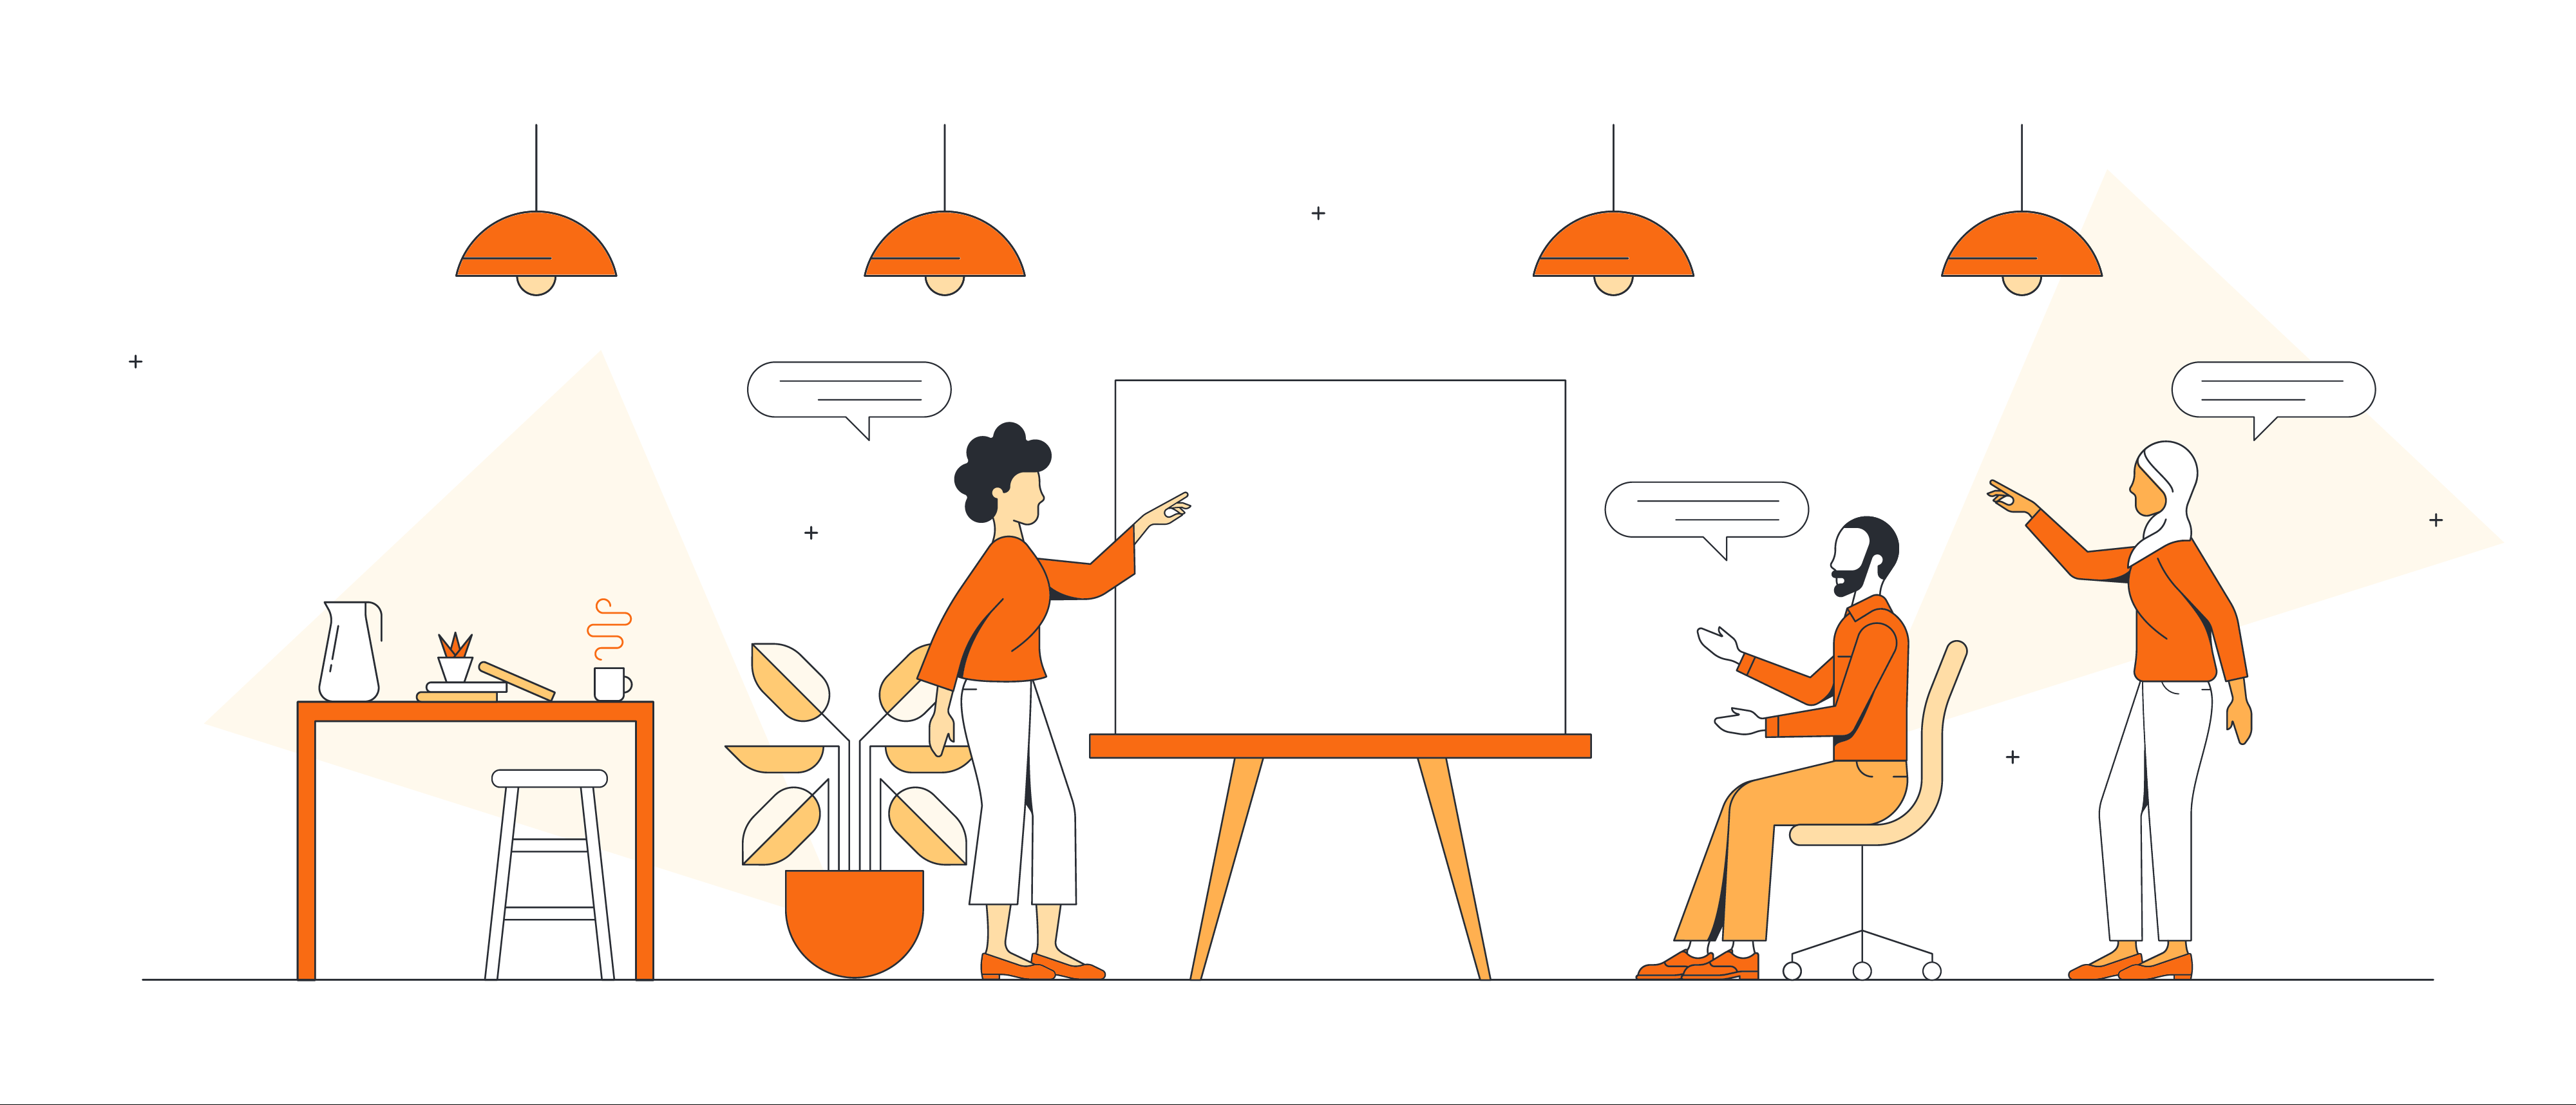 The benefits of creative unstructured spaces in project planning